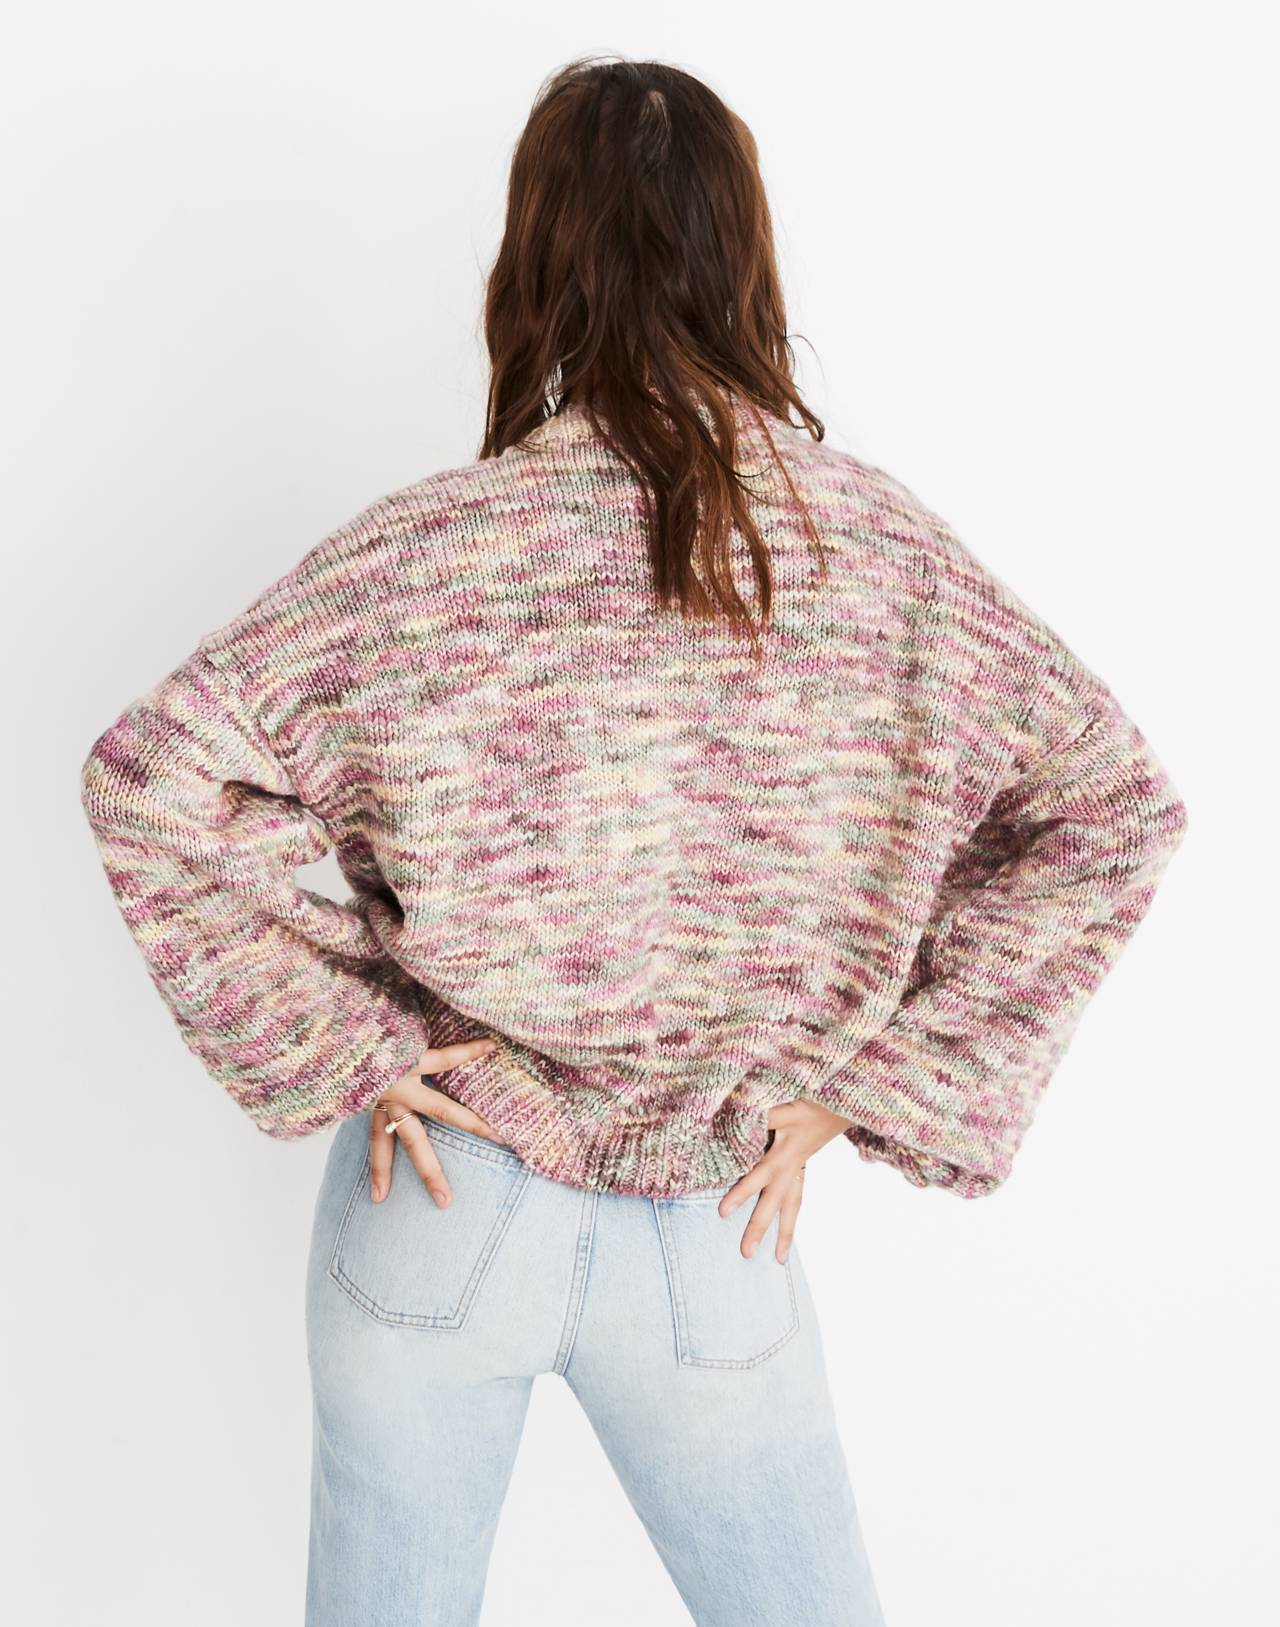 Madewell x Manos del Uruguay™ Space-Dyed Pullover Sweater in pink space image 3